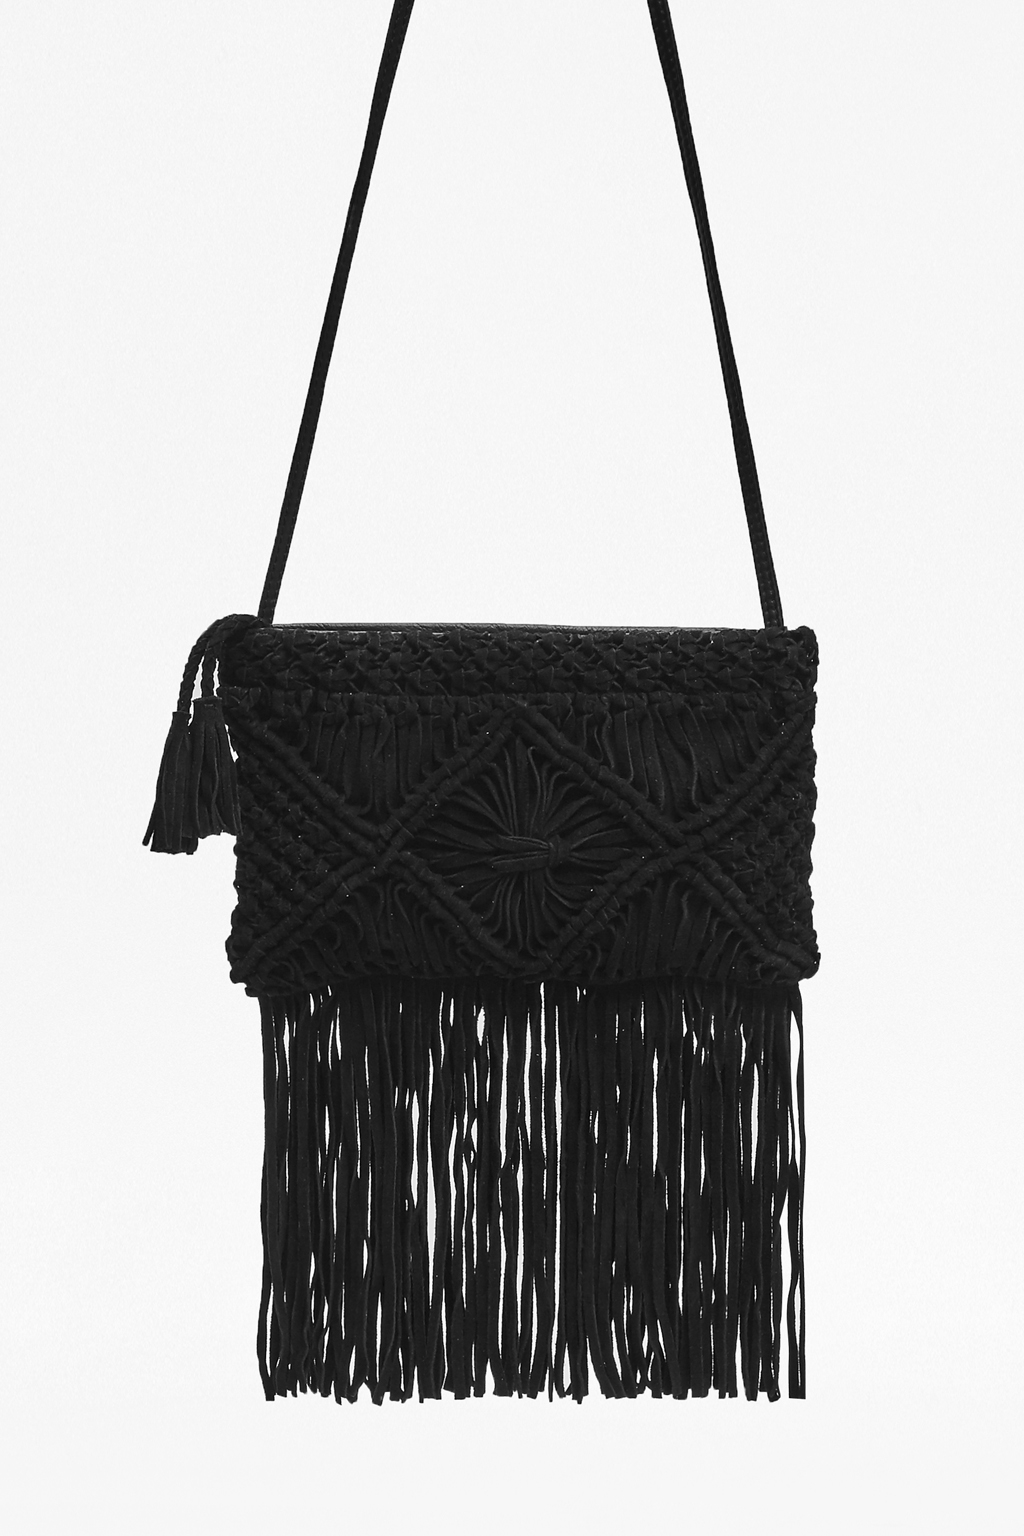 13f741fc6 Black Suede Fringe Bag Uk | Stanford Center for Opportunity Policy ...